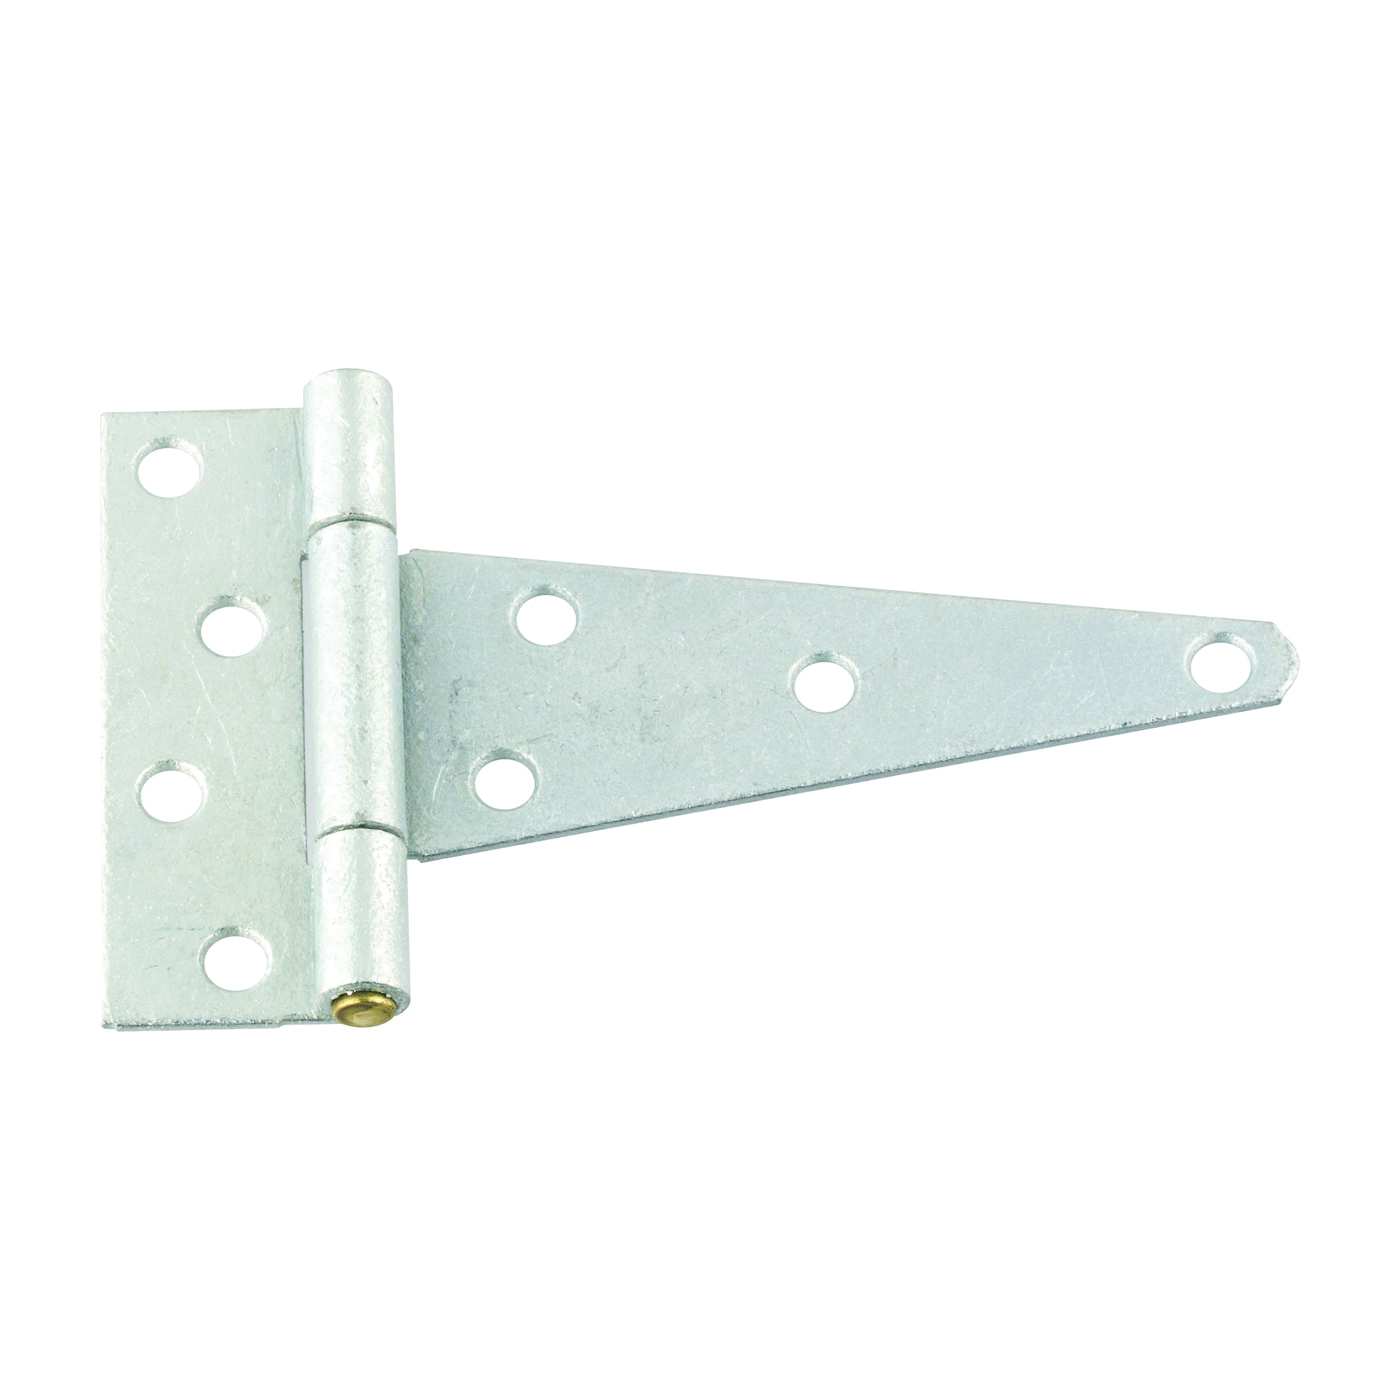 Picture of National Hardware N129-445 T-Hinge, Galvanized Steel